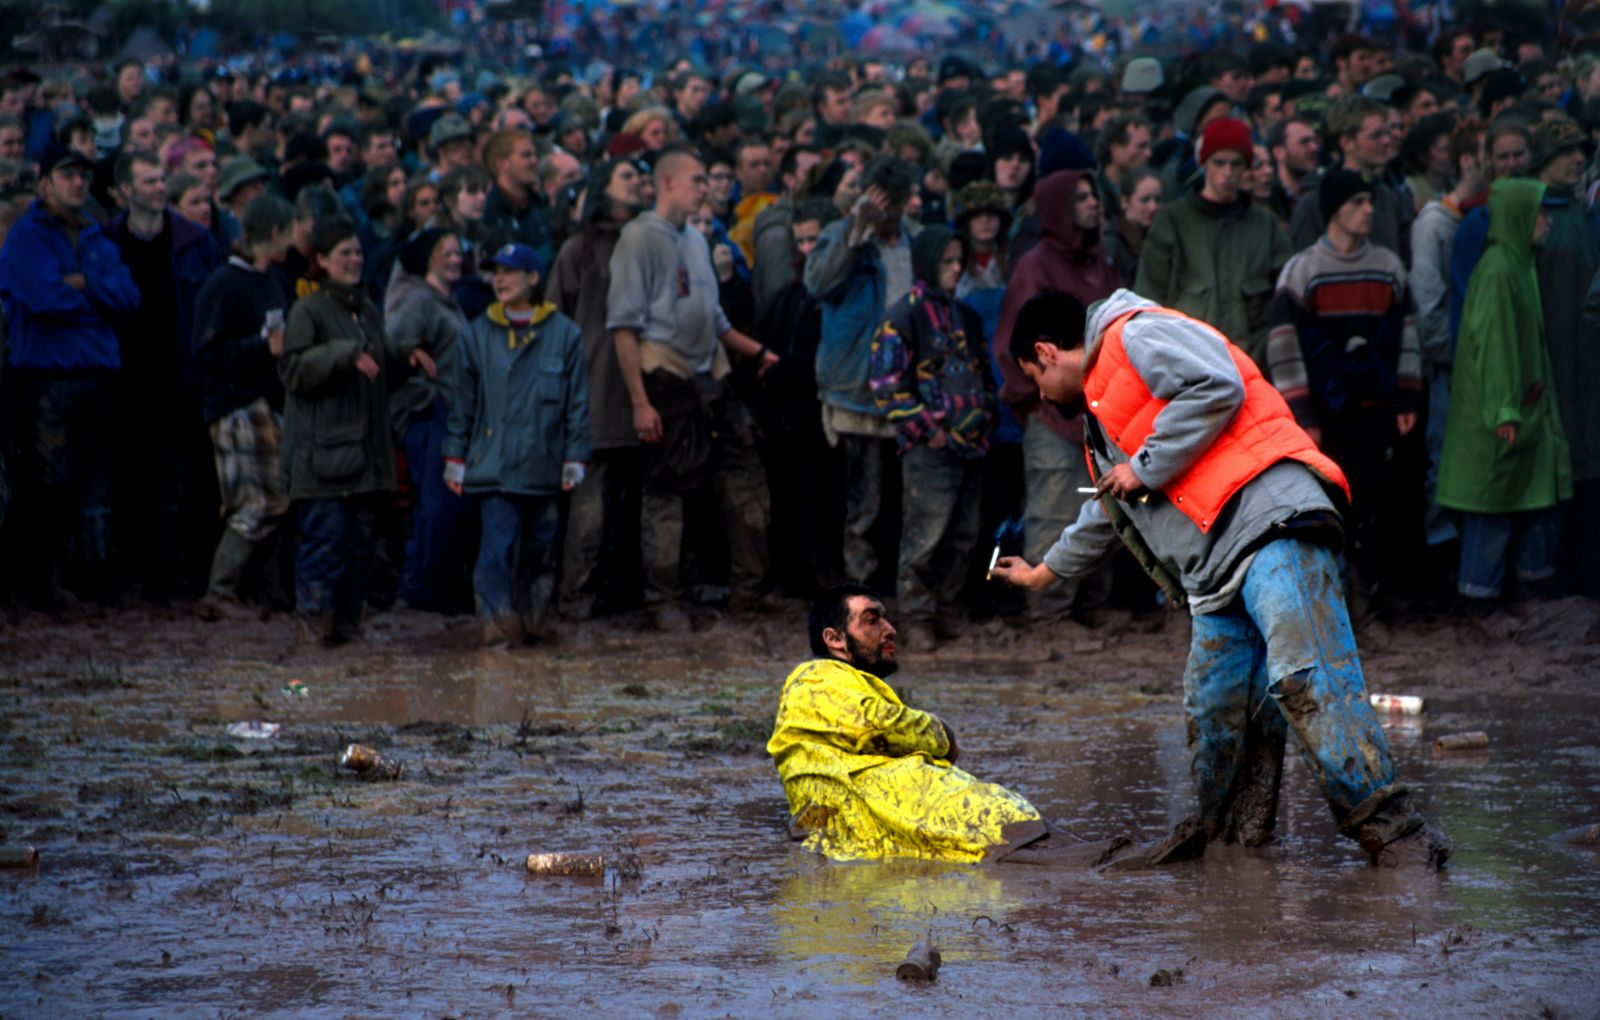 A 90s festival-goer delivers vital provisions to a friend stuck in the mud. Credit: Ann Cook